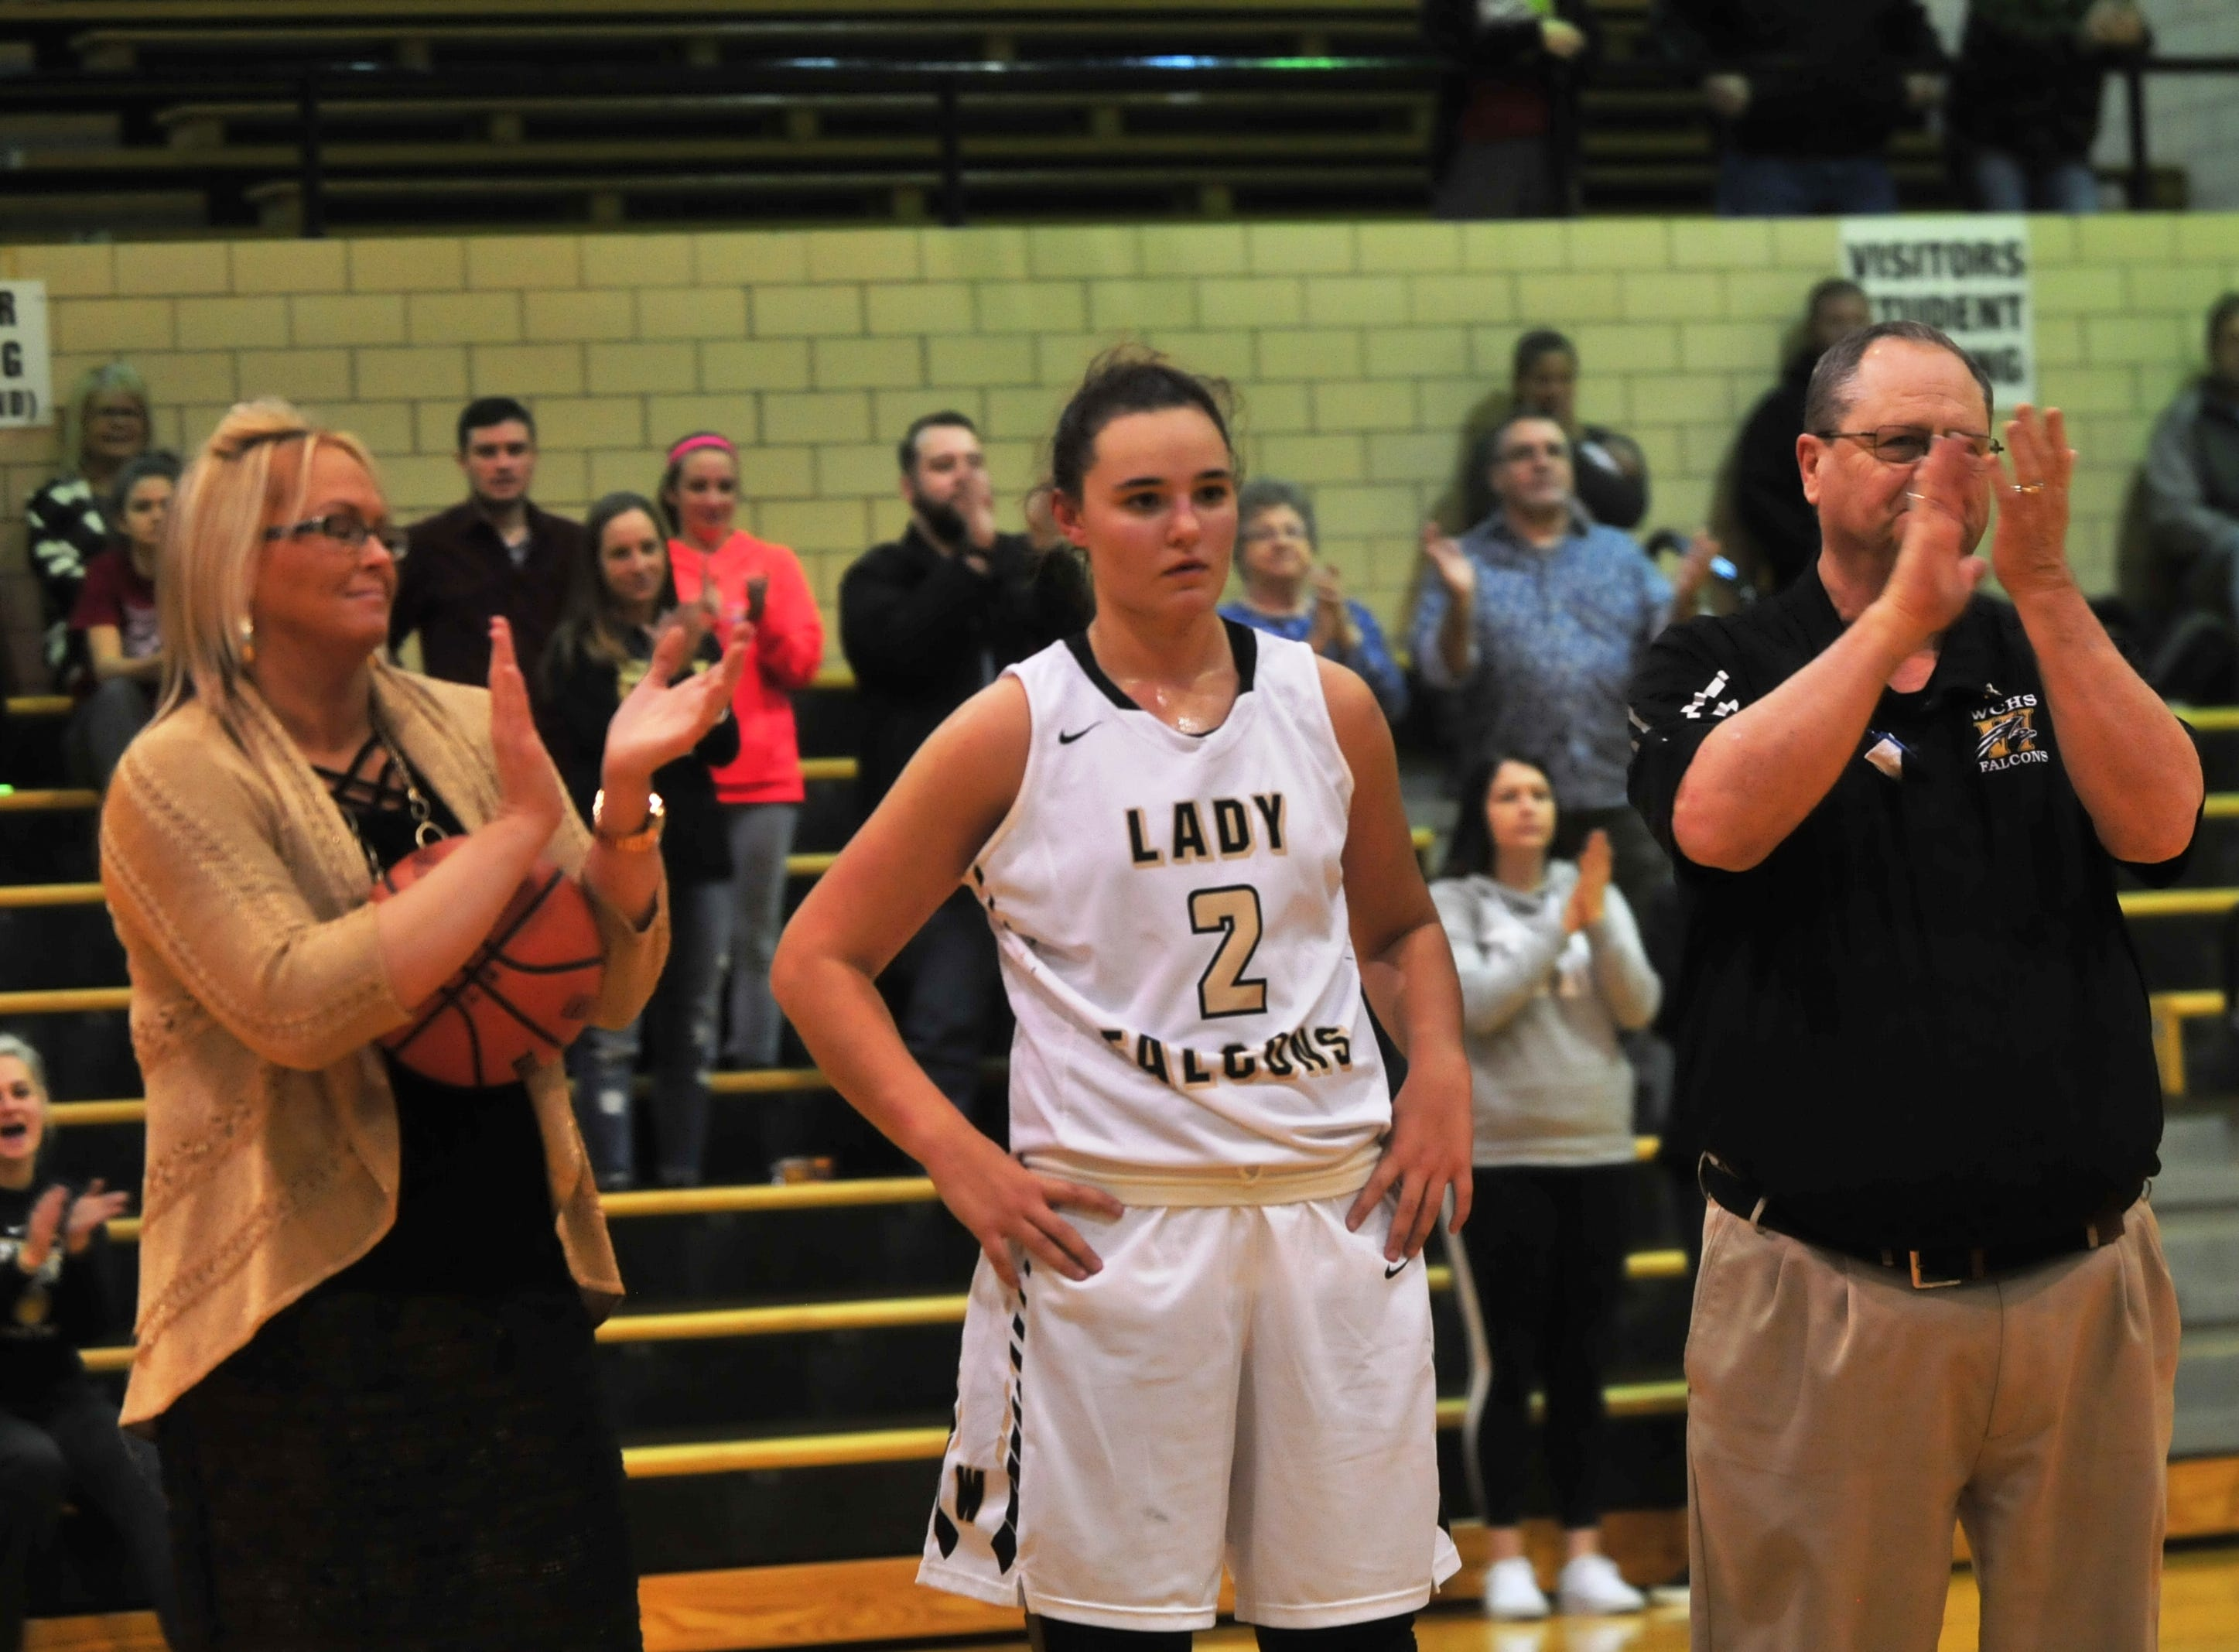 Winchester's Maddie Lawrence (2) was honored for surpassing the 1,000-point milestone during halftime of an 84-44 girls basketball win over Knightstown Friday, Nov. 9, 2018 at Winchester Fieldhouse.